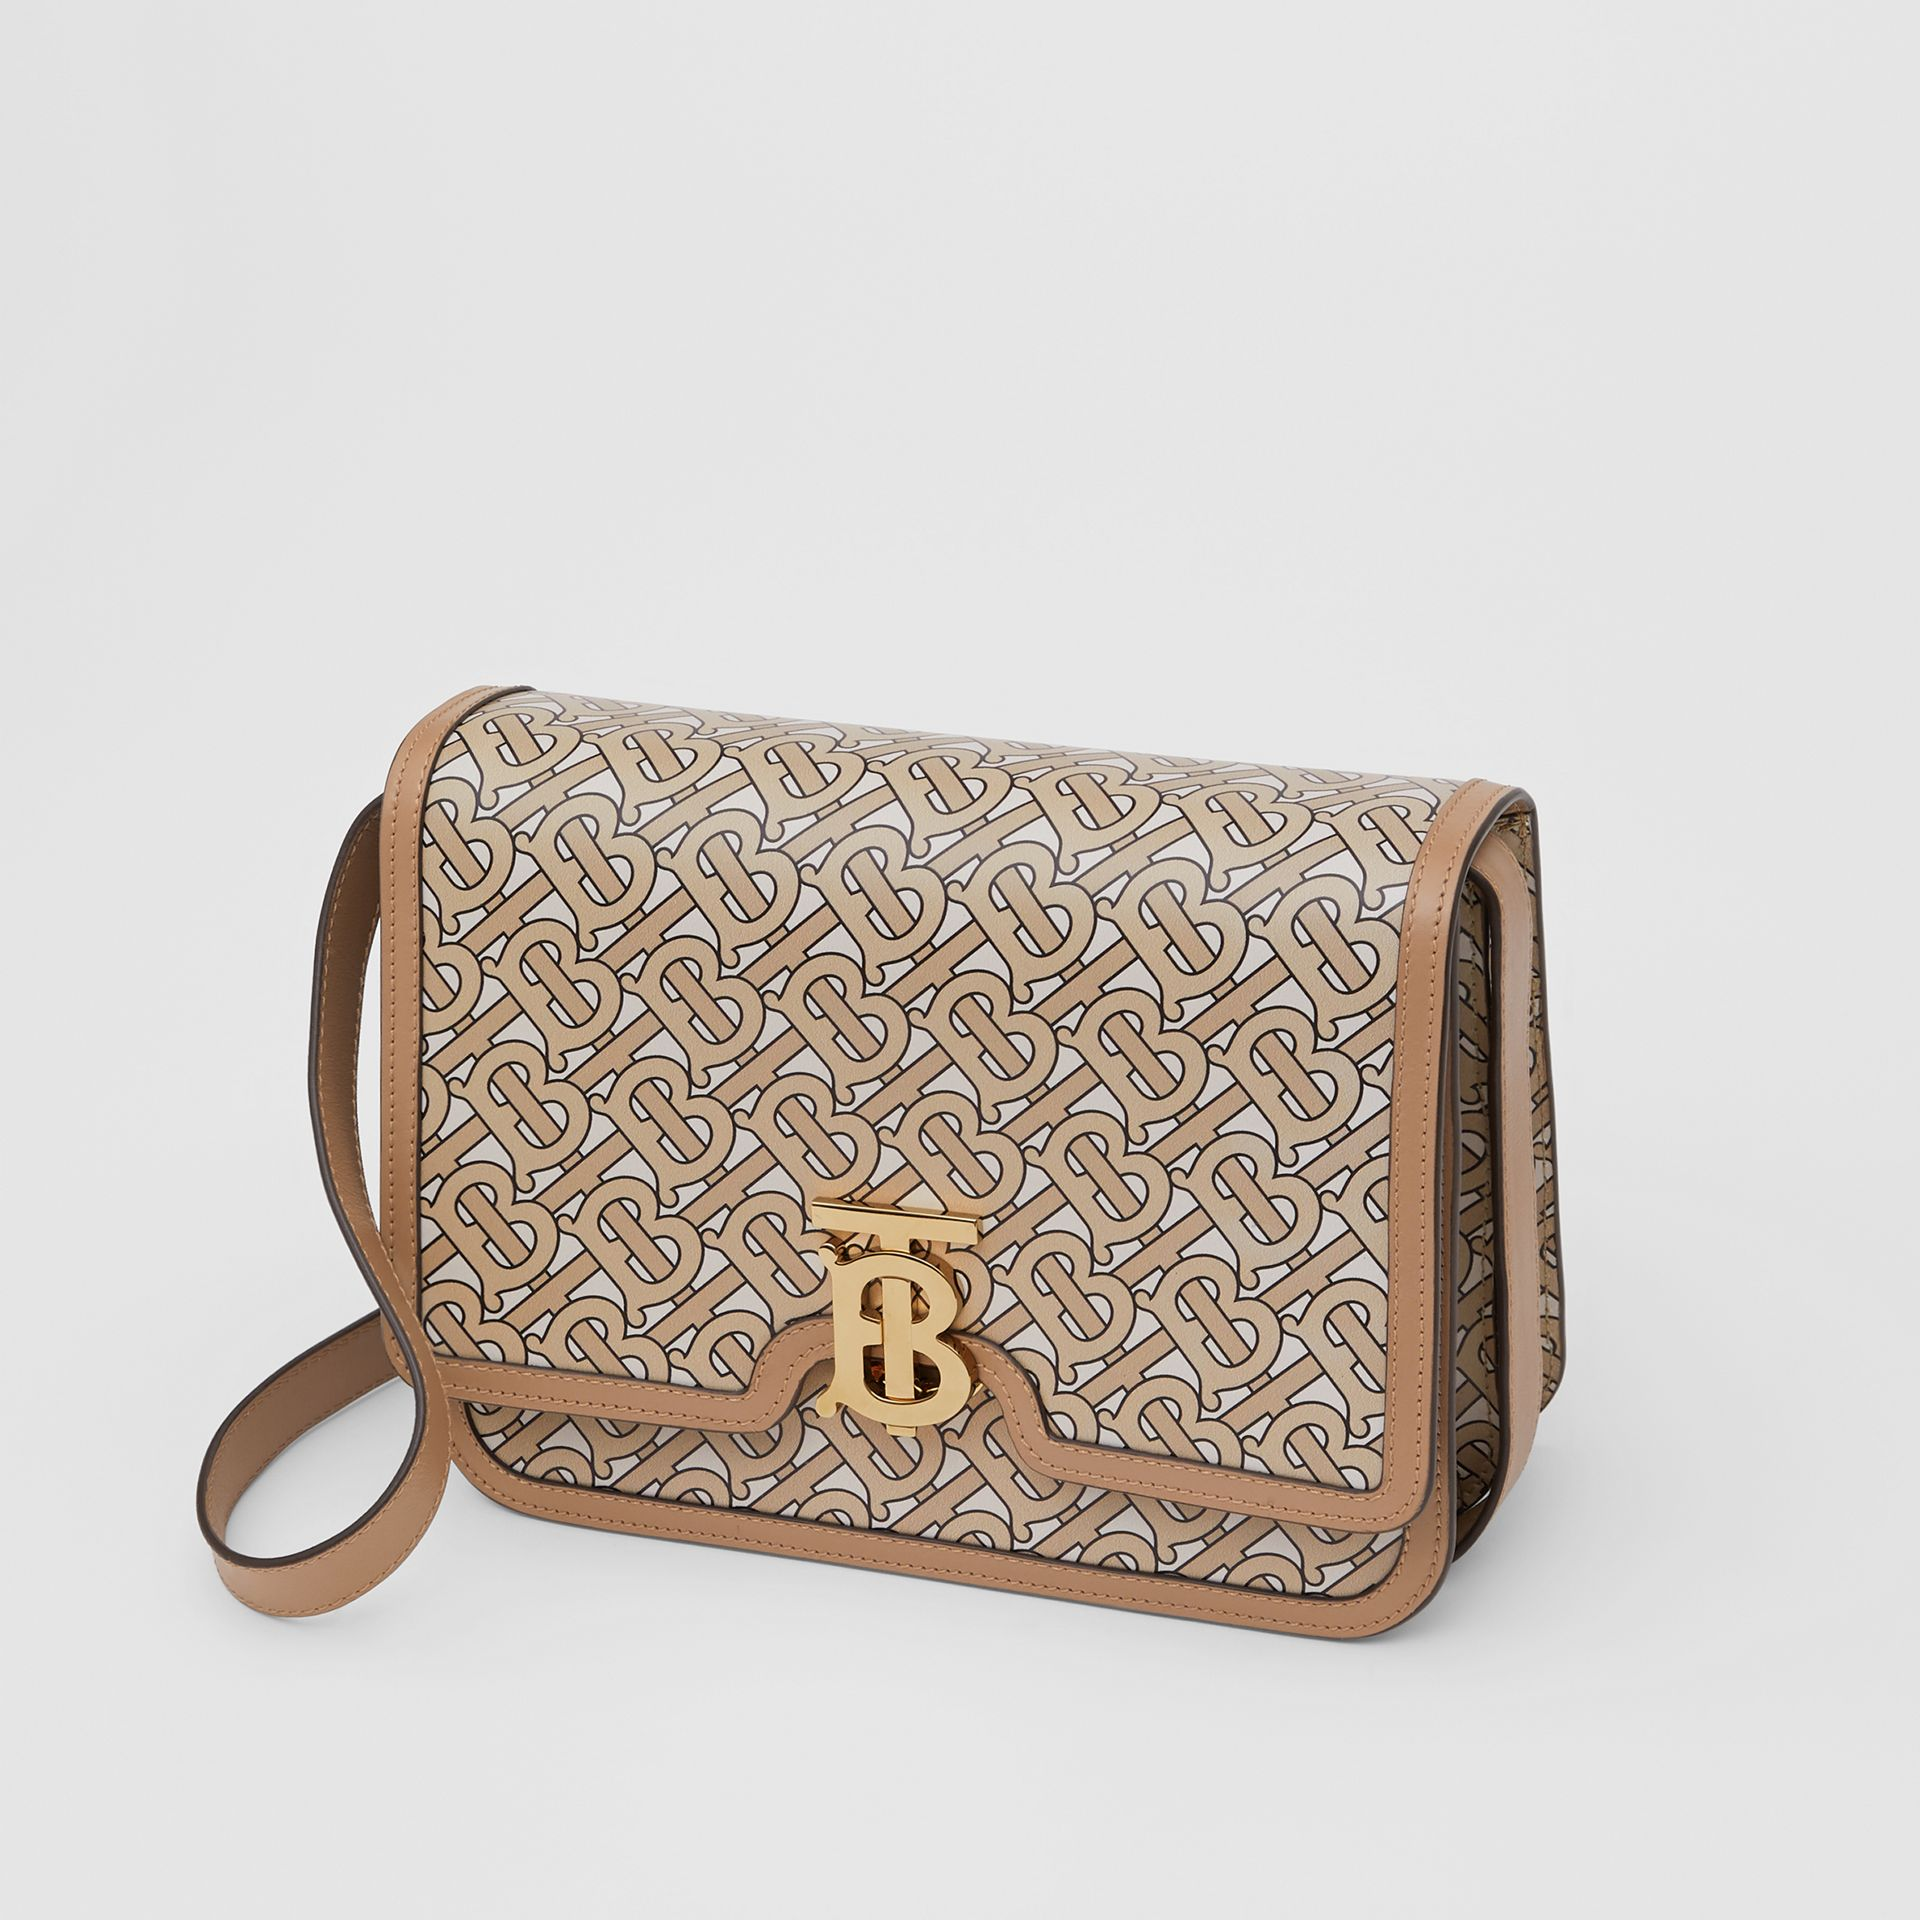 Medium Monogram Print Leather TB Bag in Beige - Women | Burberry - gallery image 3